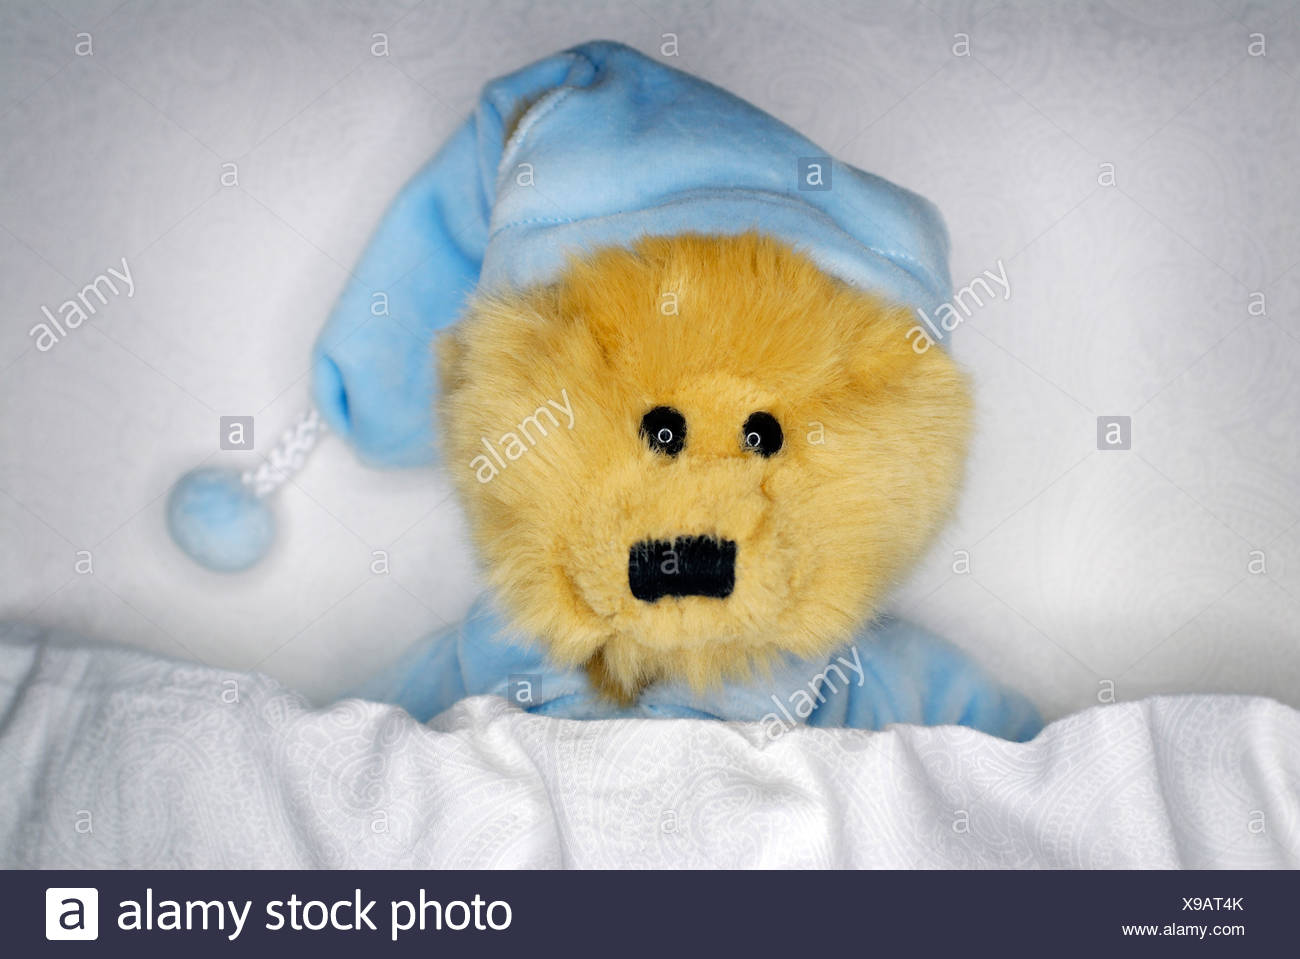 teddy bear in a bed - Stock Image